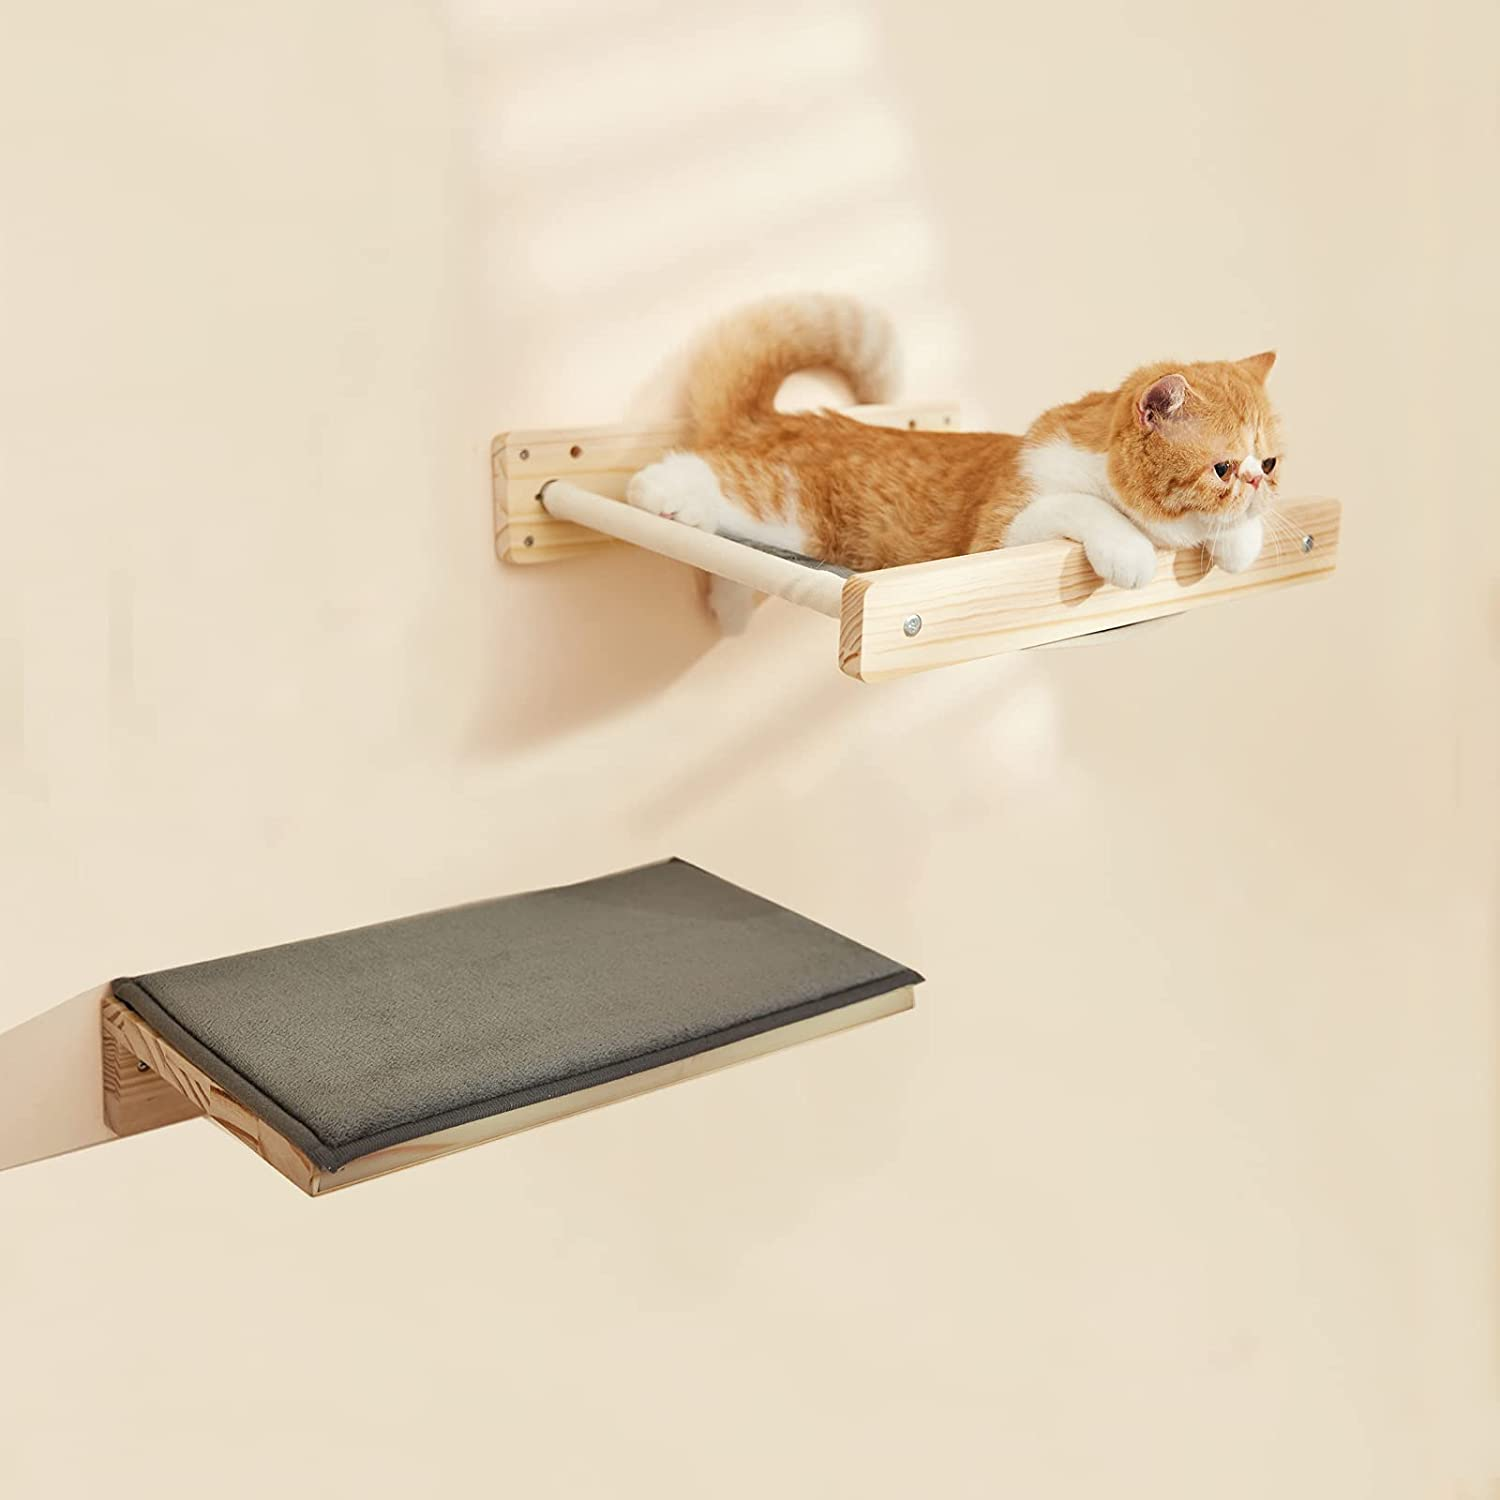 SIMPLY + 2 in 1 Cat Hammock Wall Mounted Wall Shelf with Mat for Large Cats, Cat Shelves Bed and Perches for Wall-Indoor Cats Furniture for Sleeping, Playing, Climbing, Lounging-Hold Up to 44-66 lbs